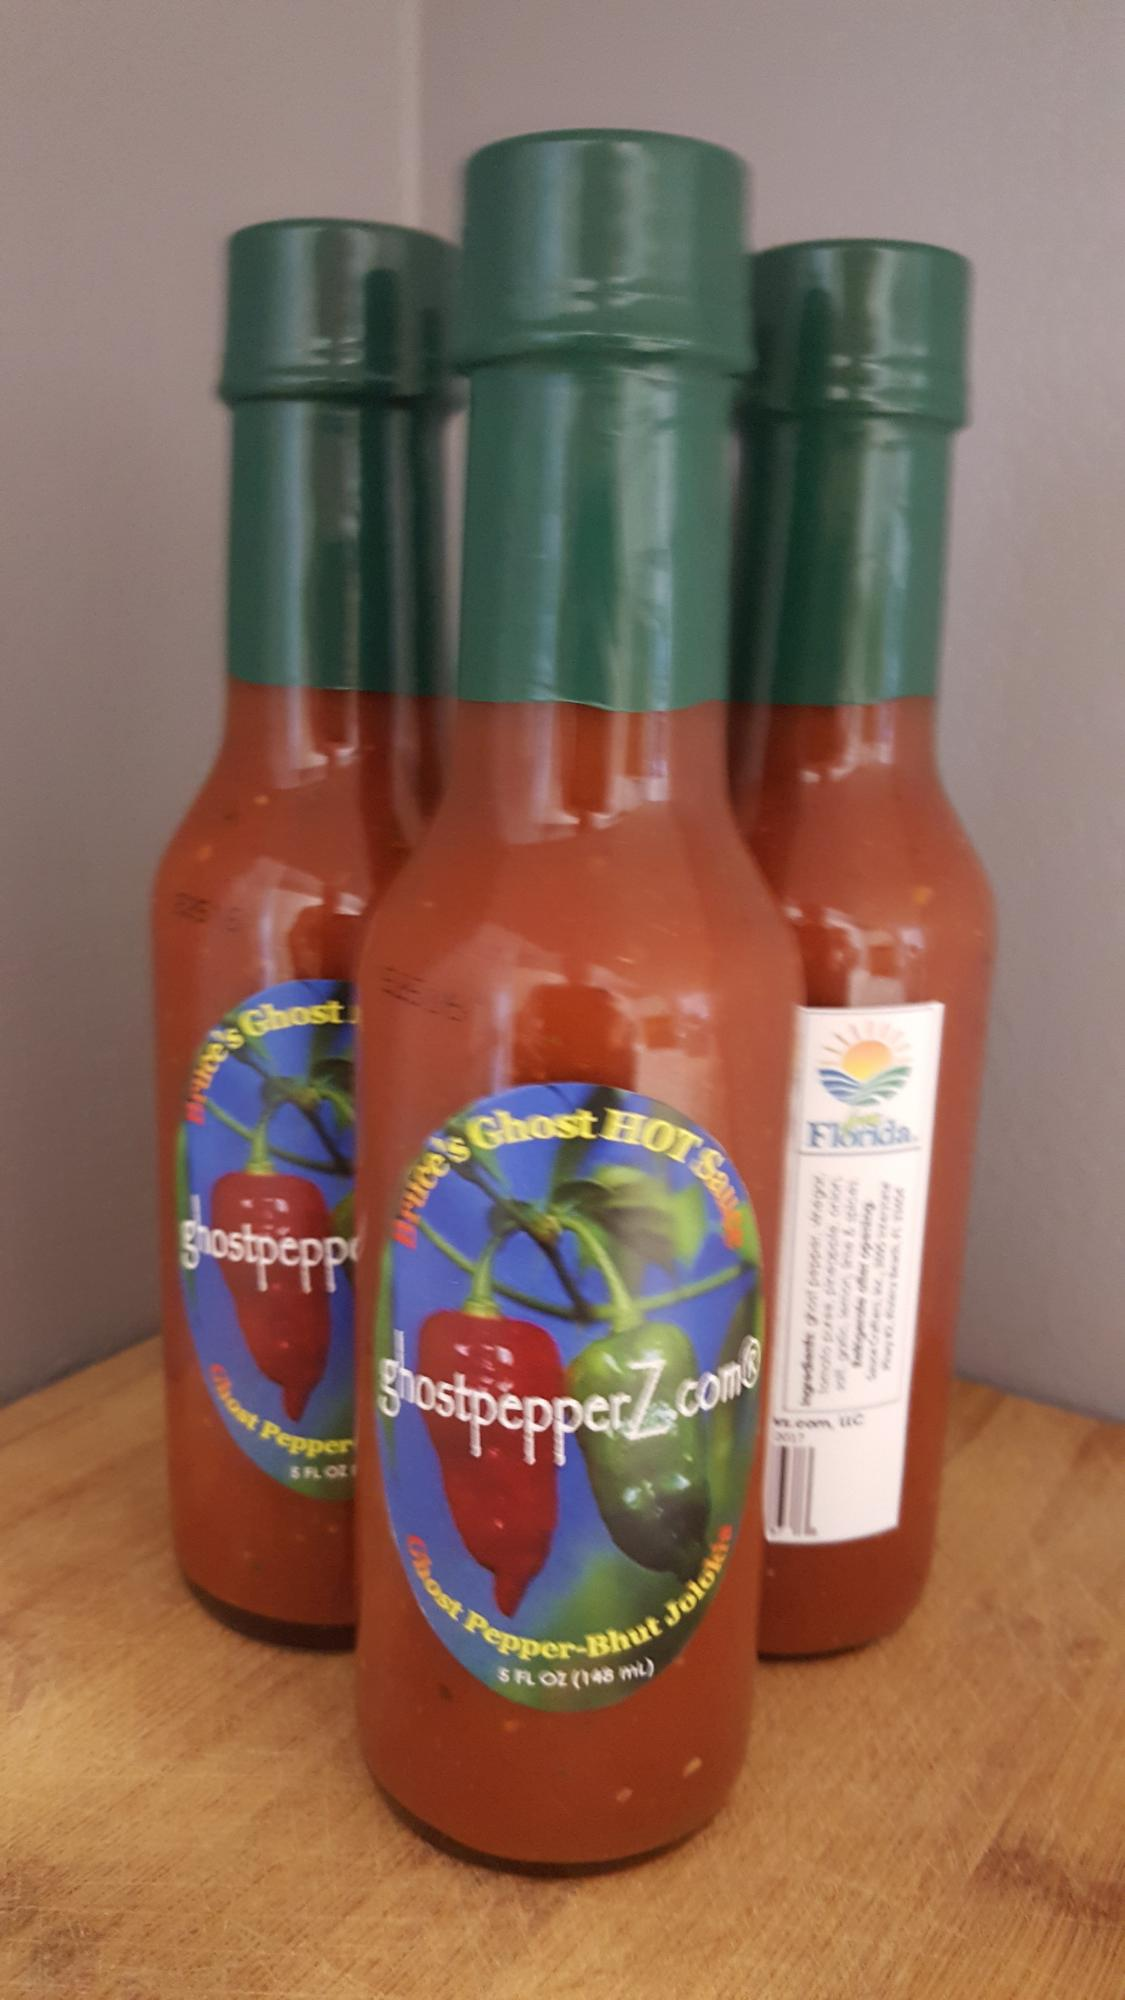 Bruce's Ghost Pepper Sauce